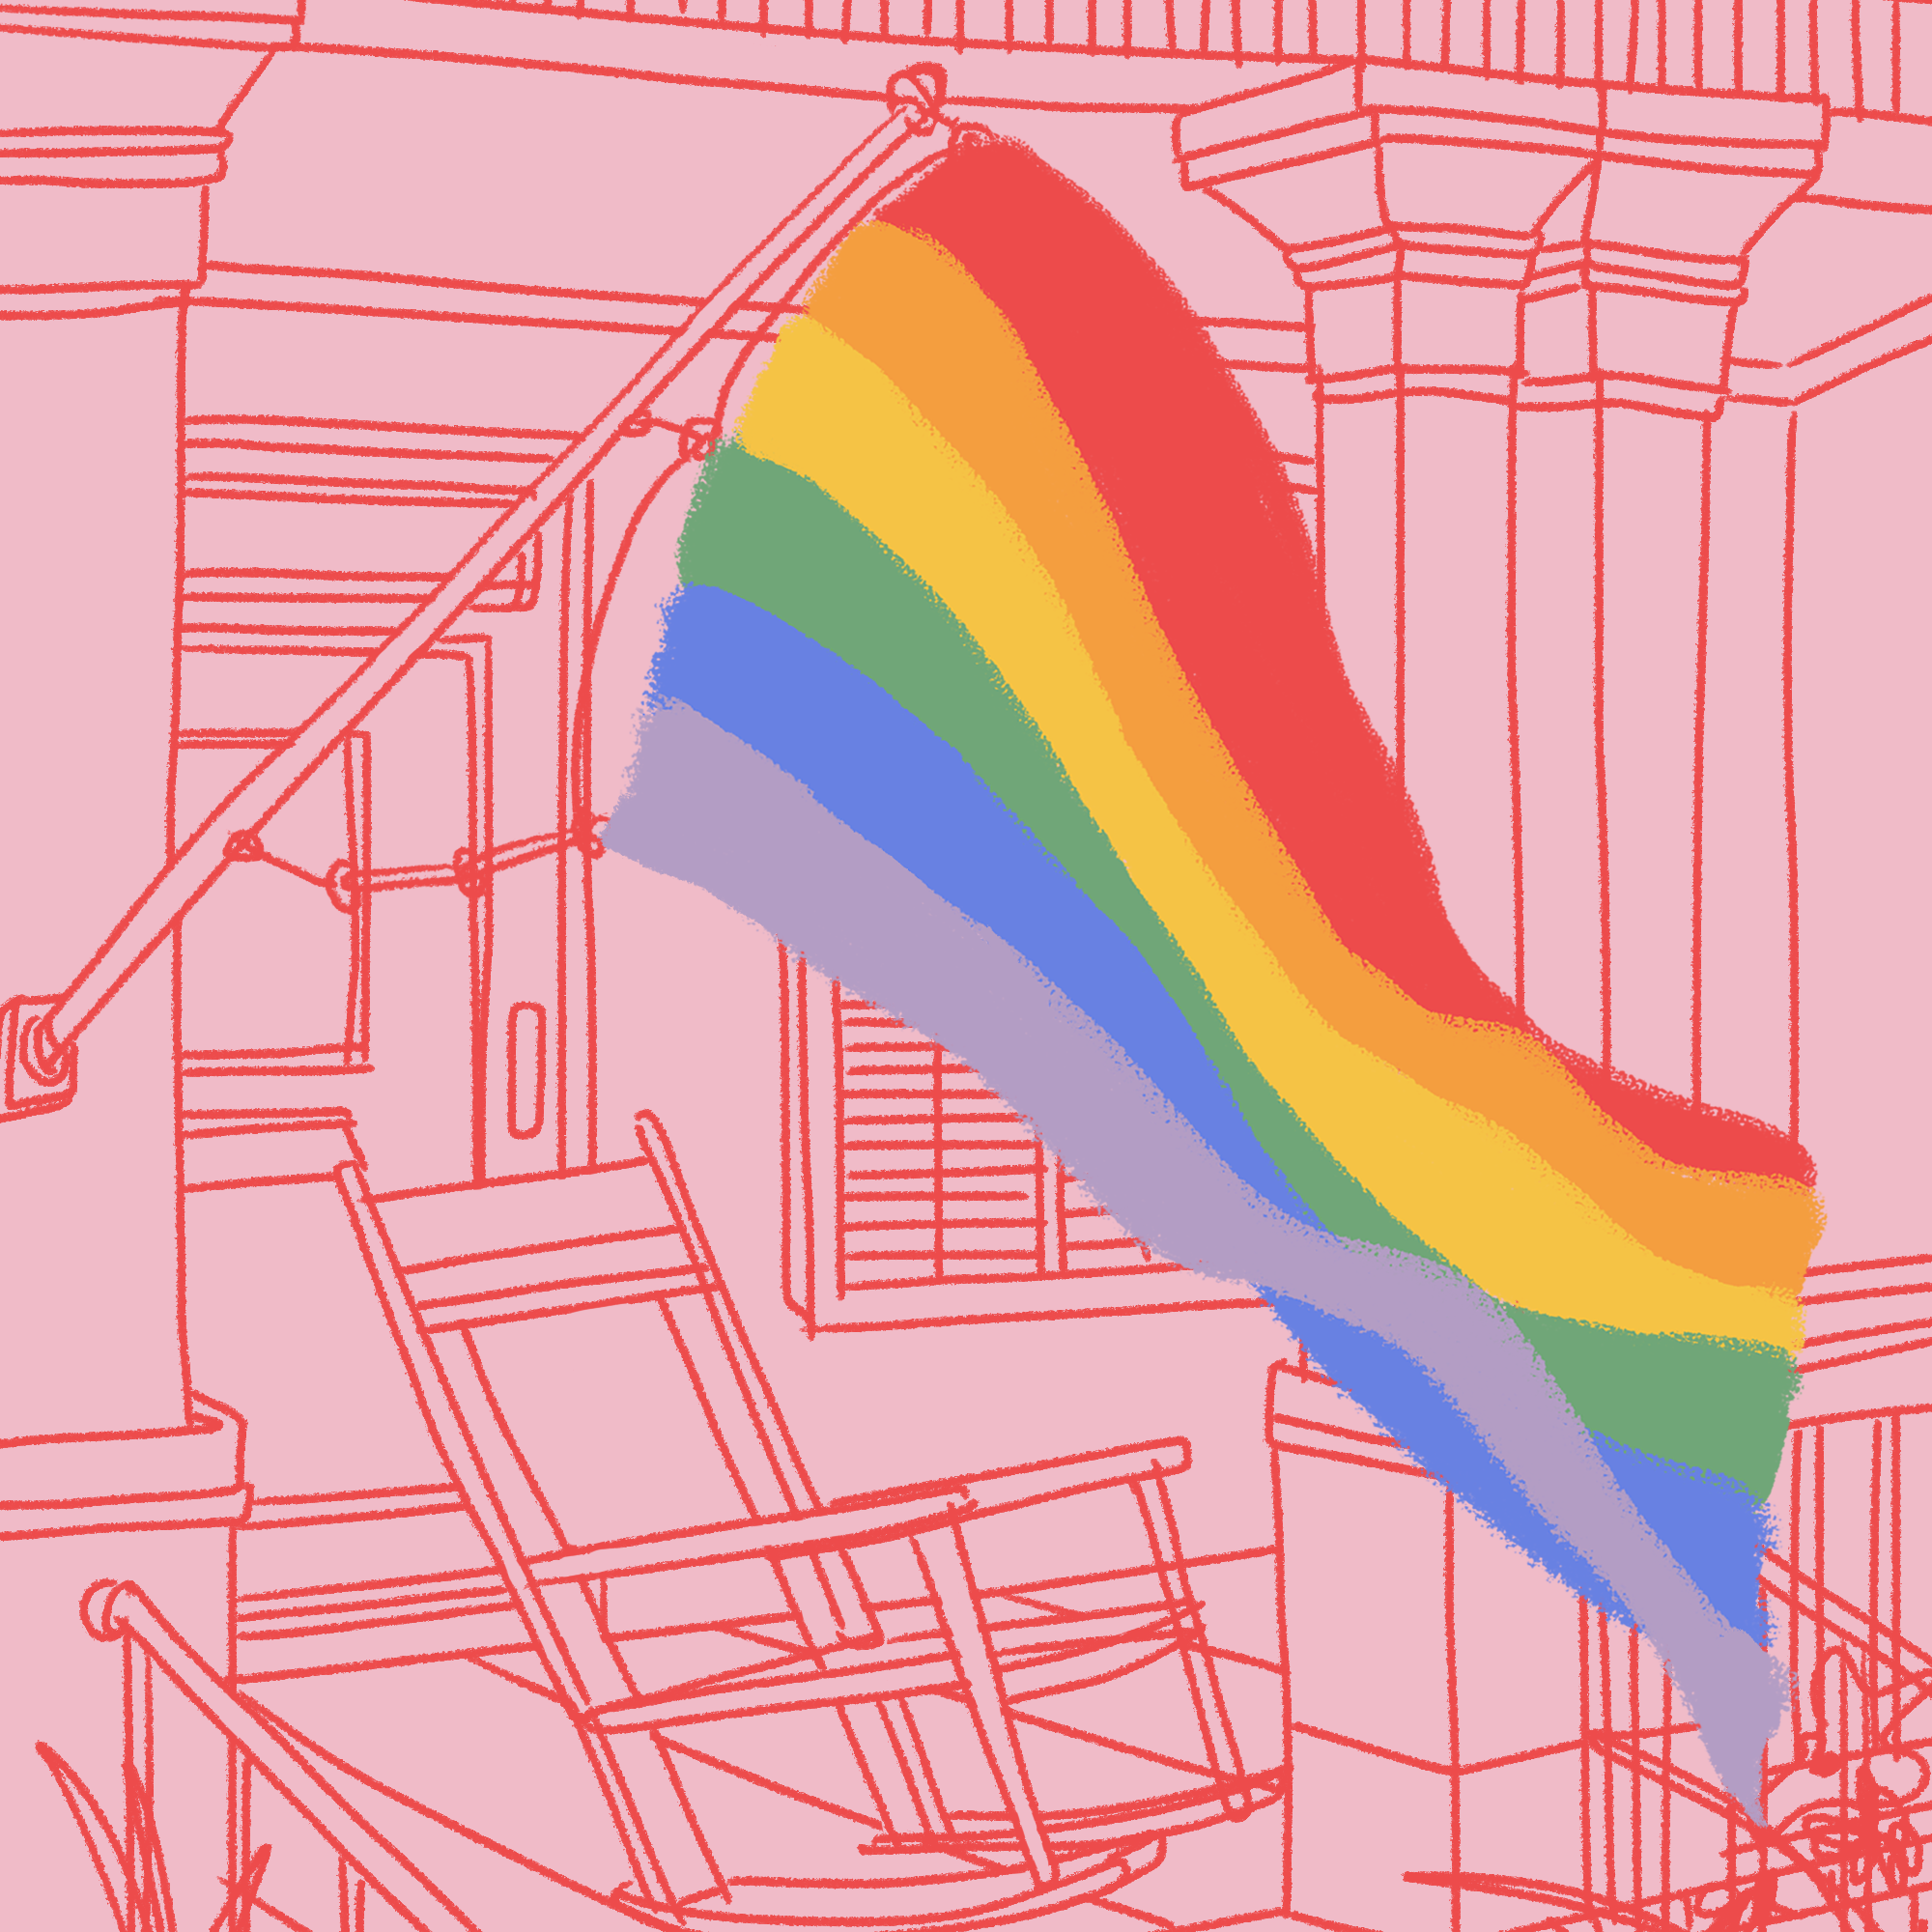 Guide To Lgbtq Flags Meanings Terms Of Pride Rainbow